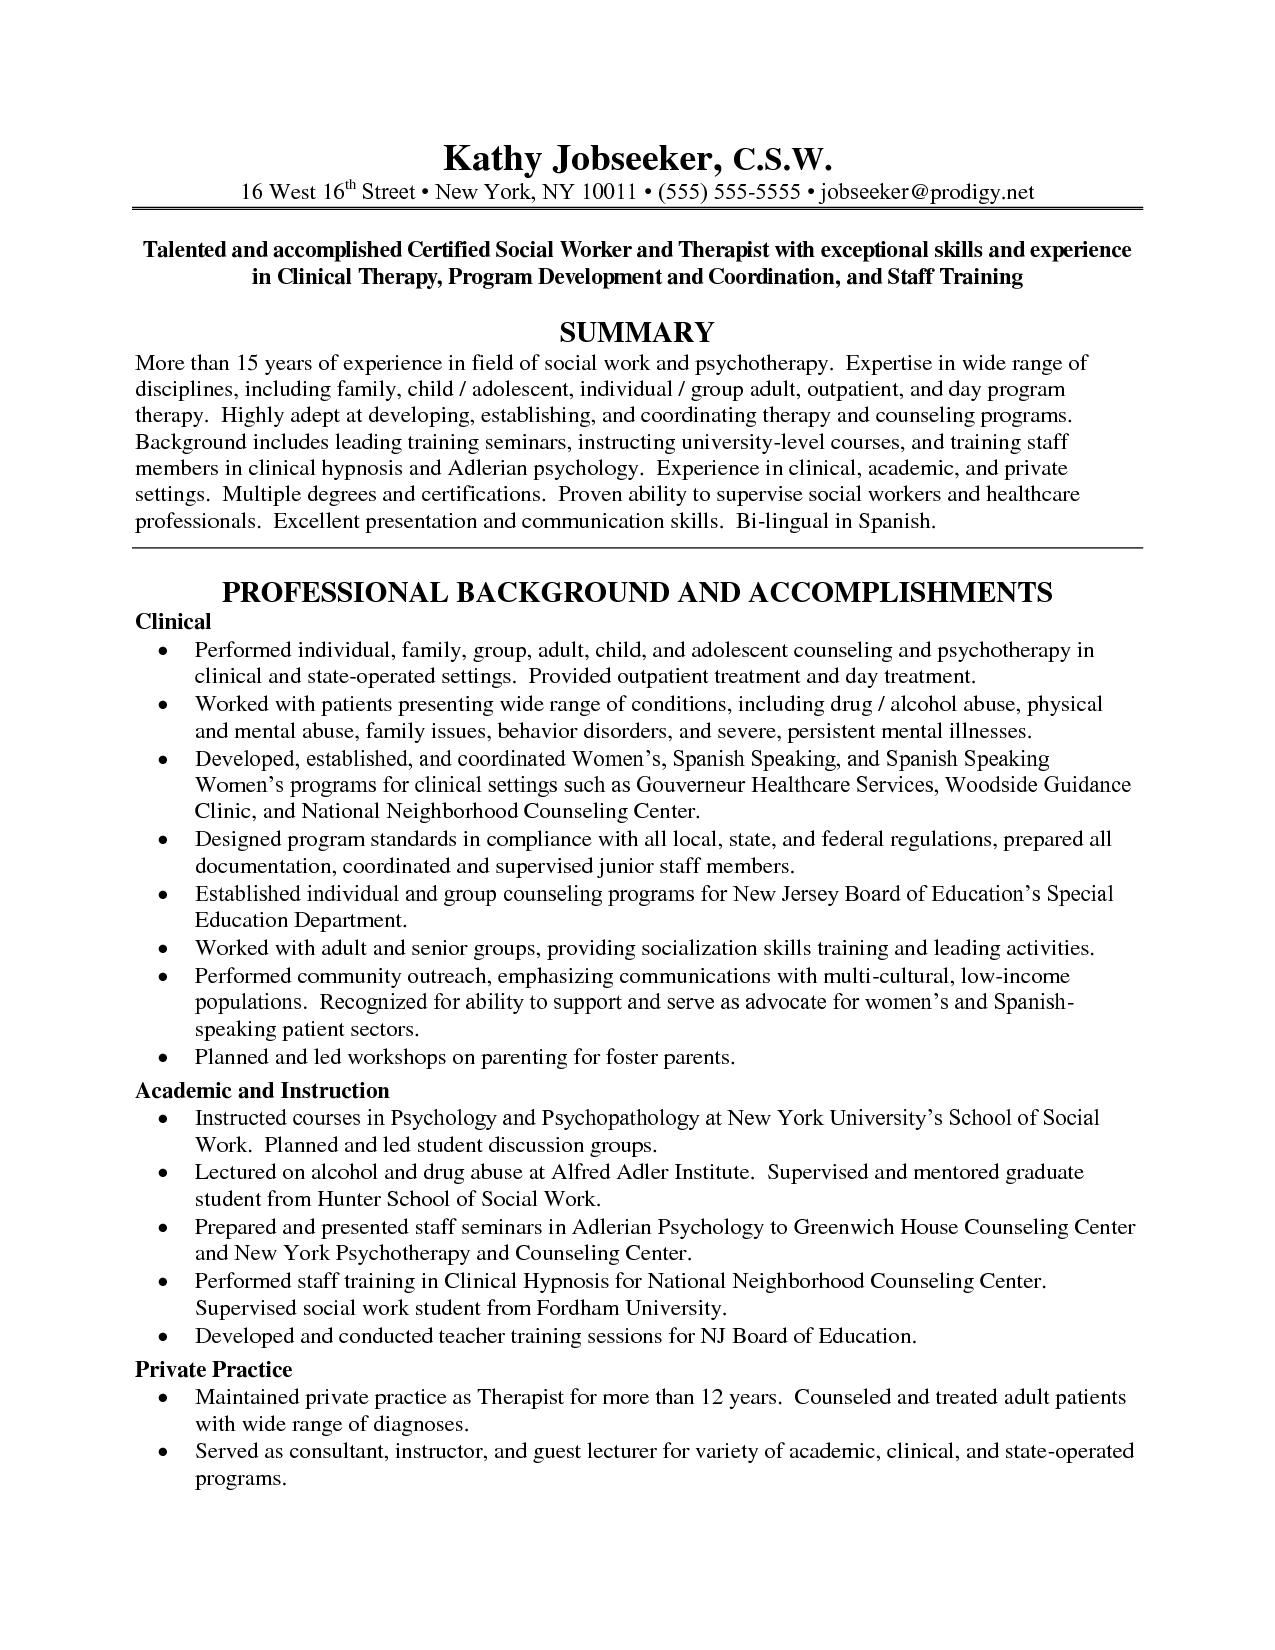 Social Work Resume Examples Social Work Resume With